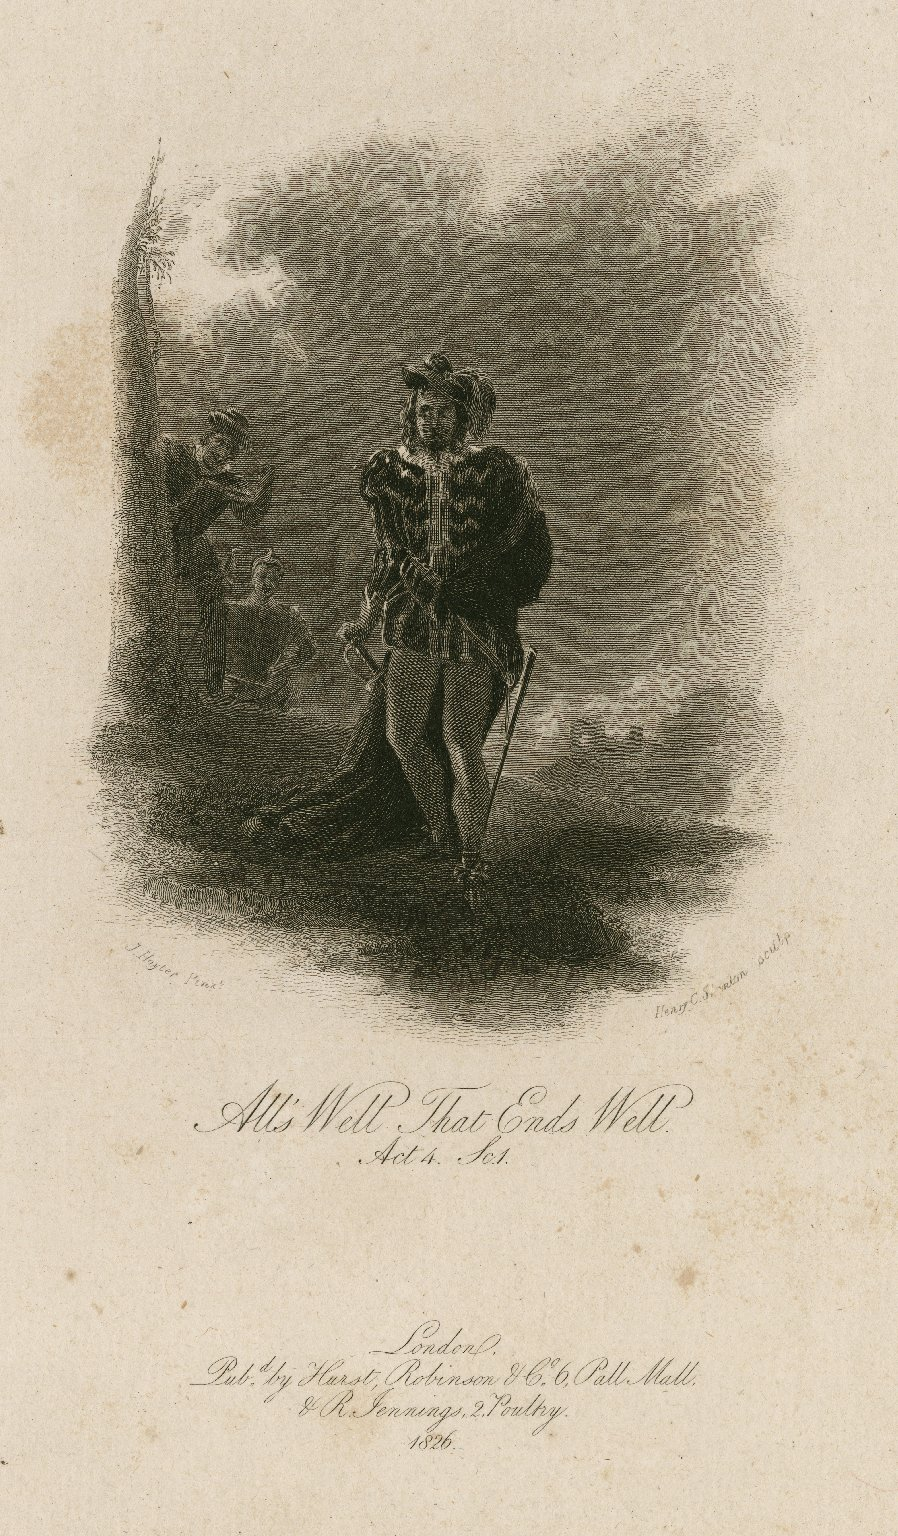 All's well that ends well, act 4, sc. 1 [graphic] / J. Hayter pinxt. ; Henry C. Shenton sculp.